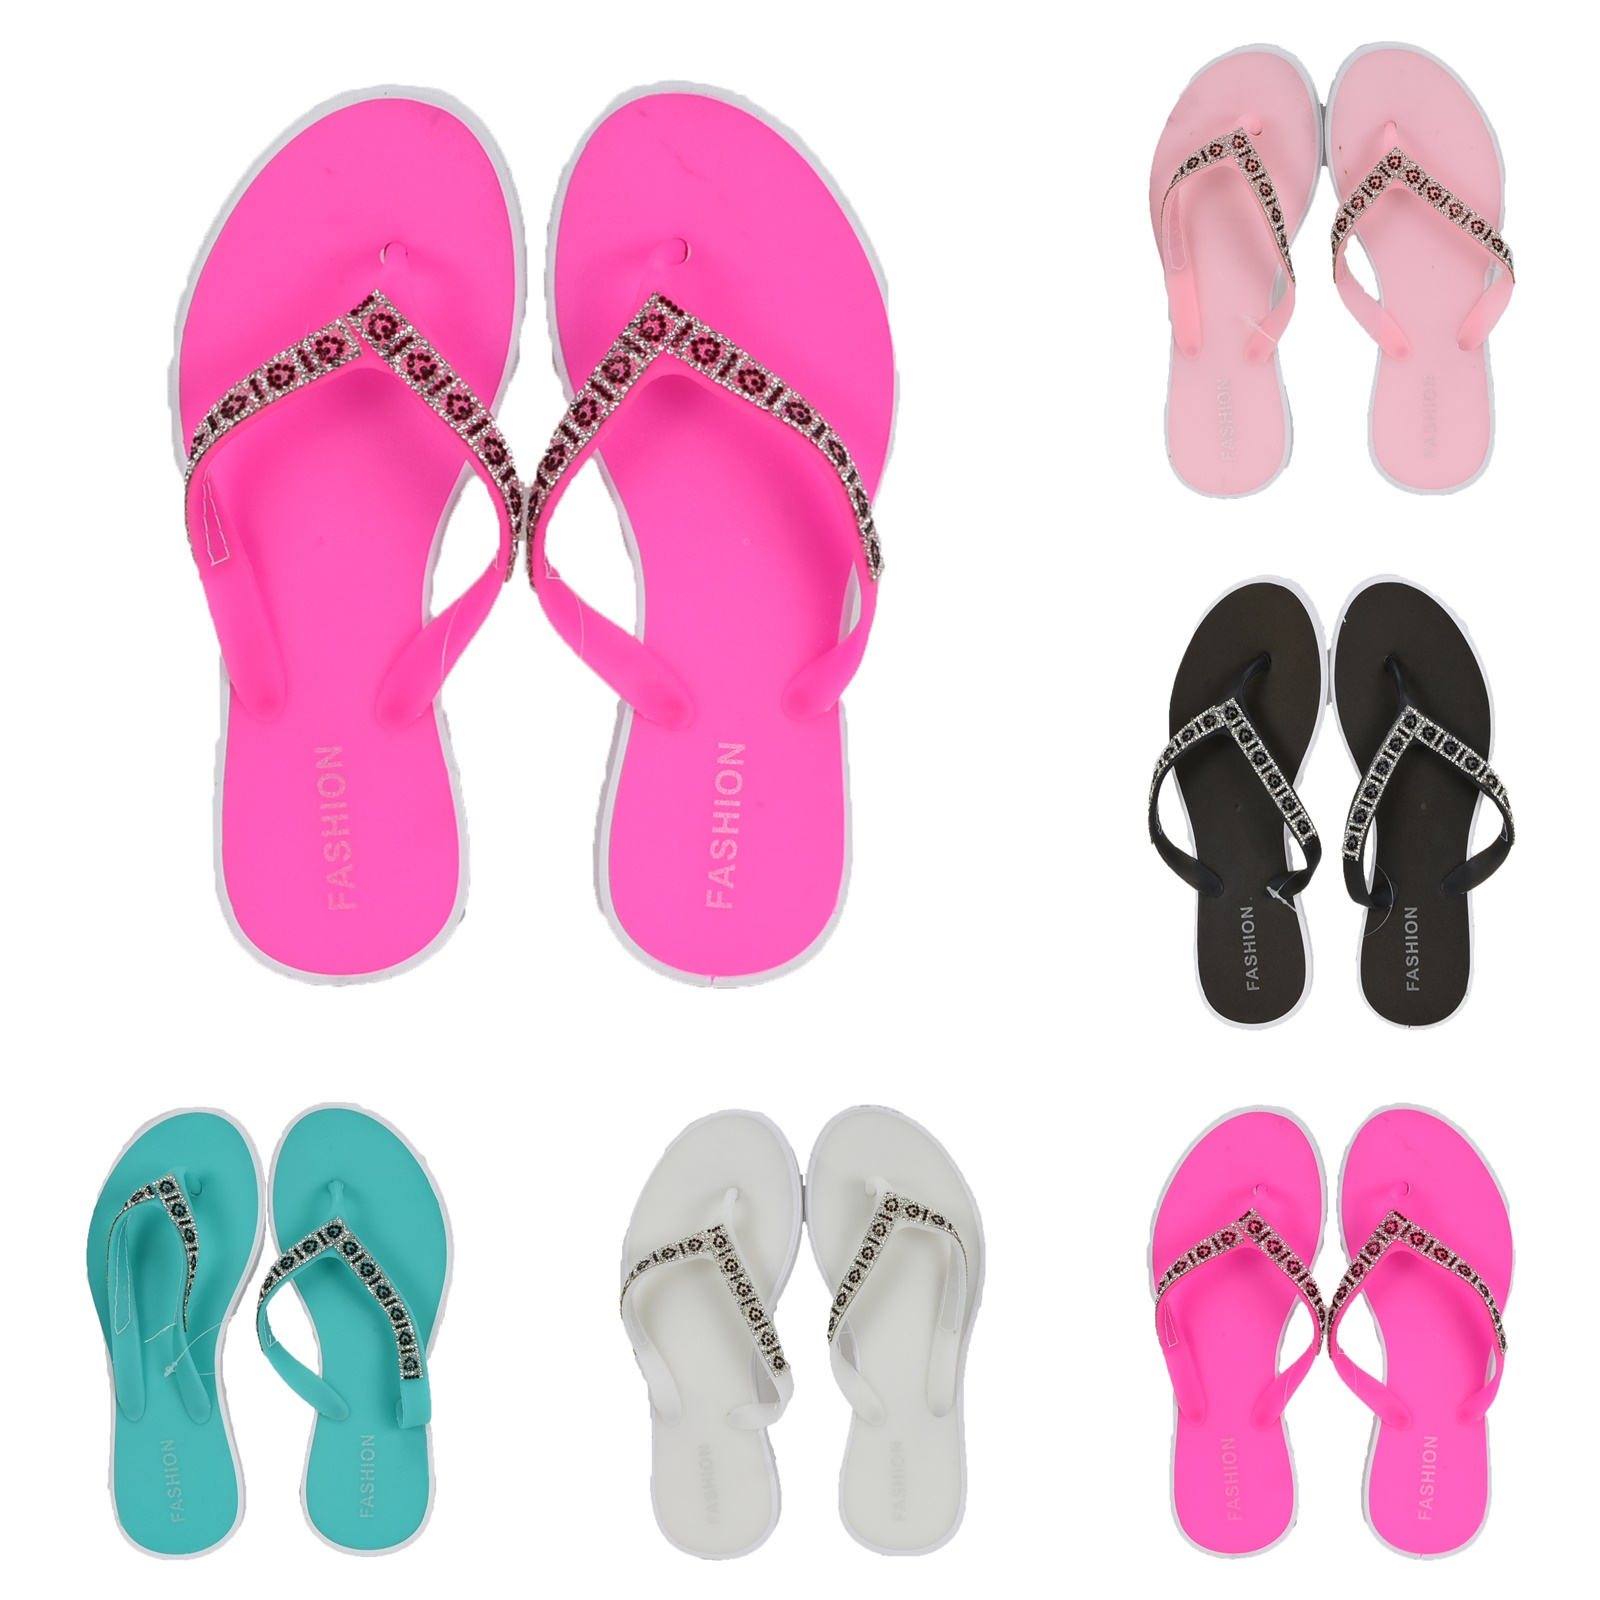 Wholesale Sandals - Women's FLIP FLOPS - 60 Pairs